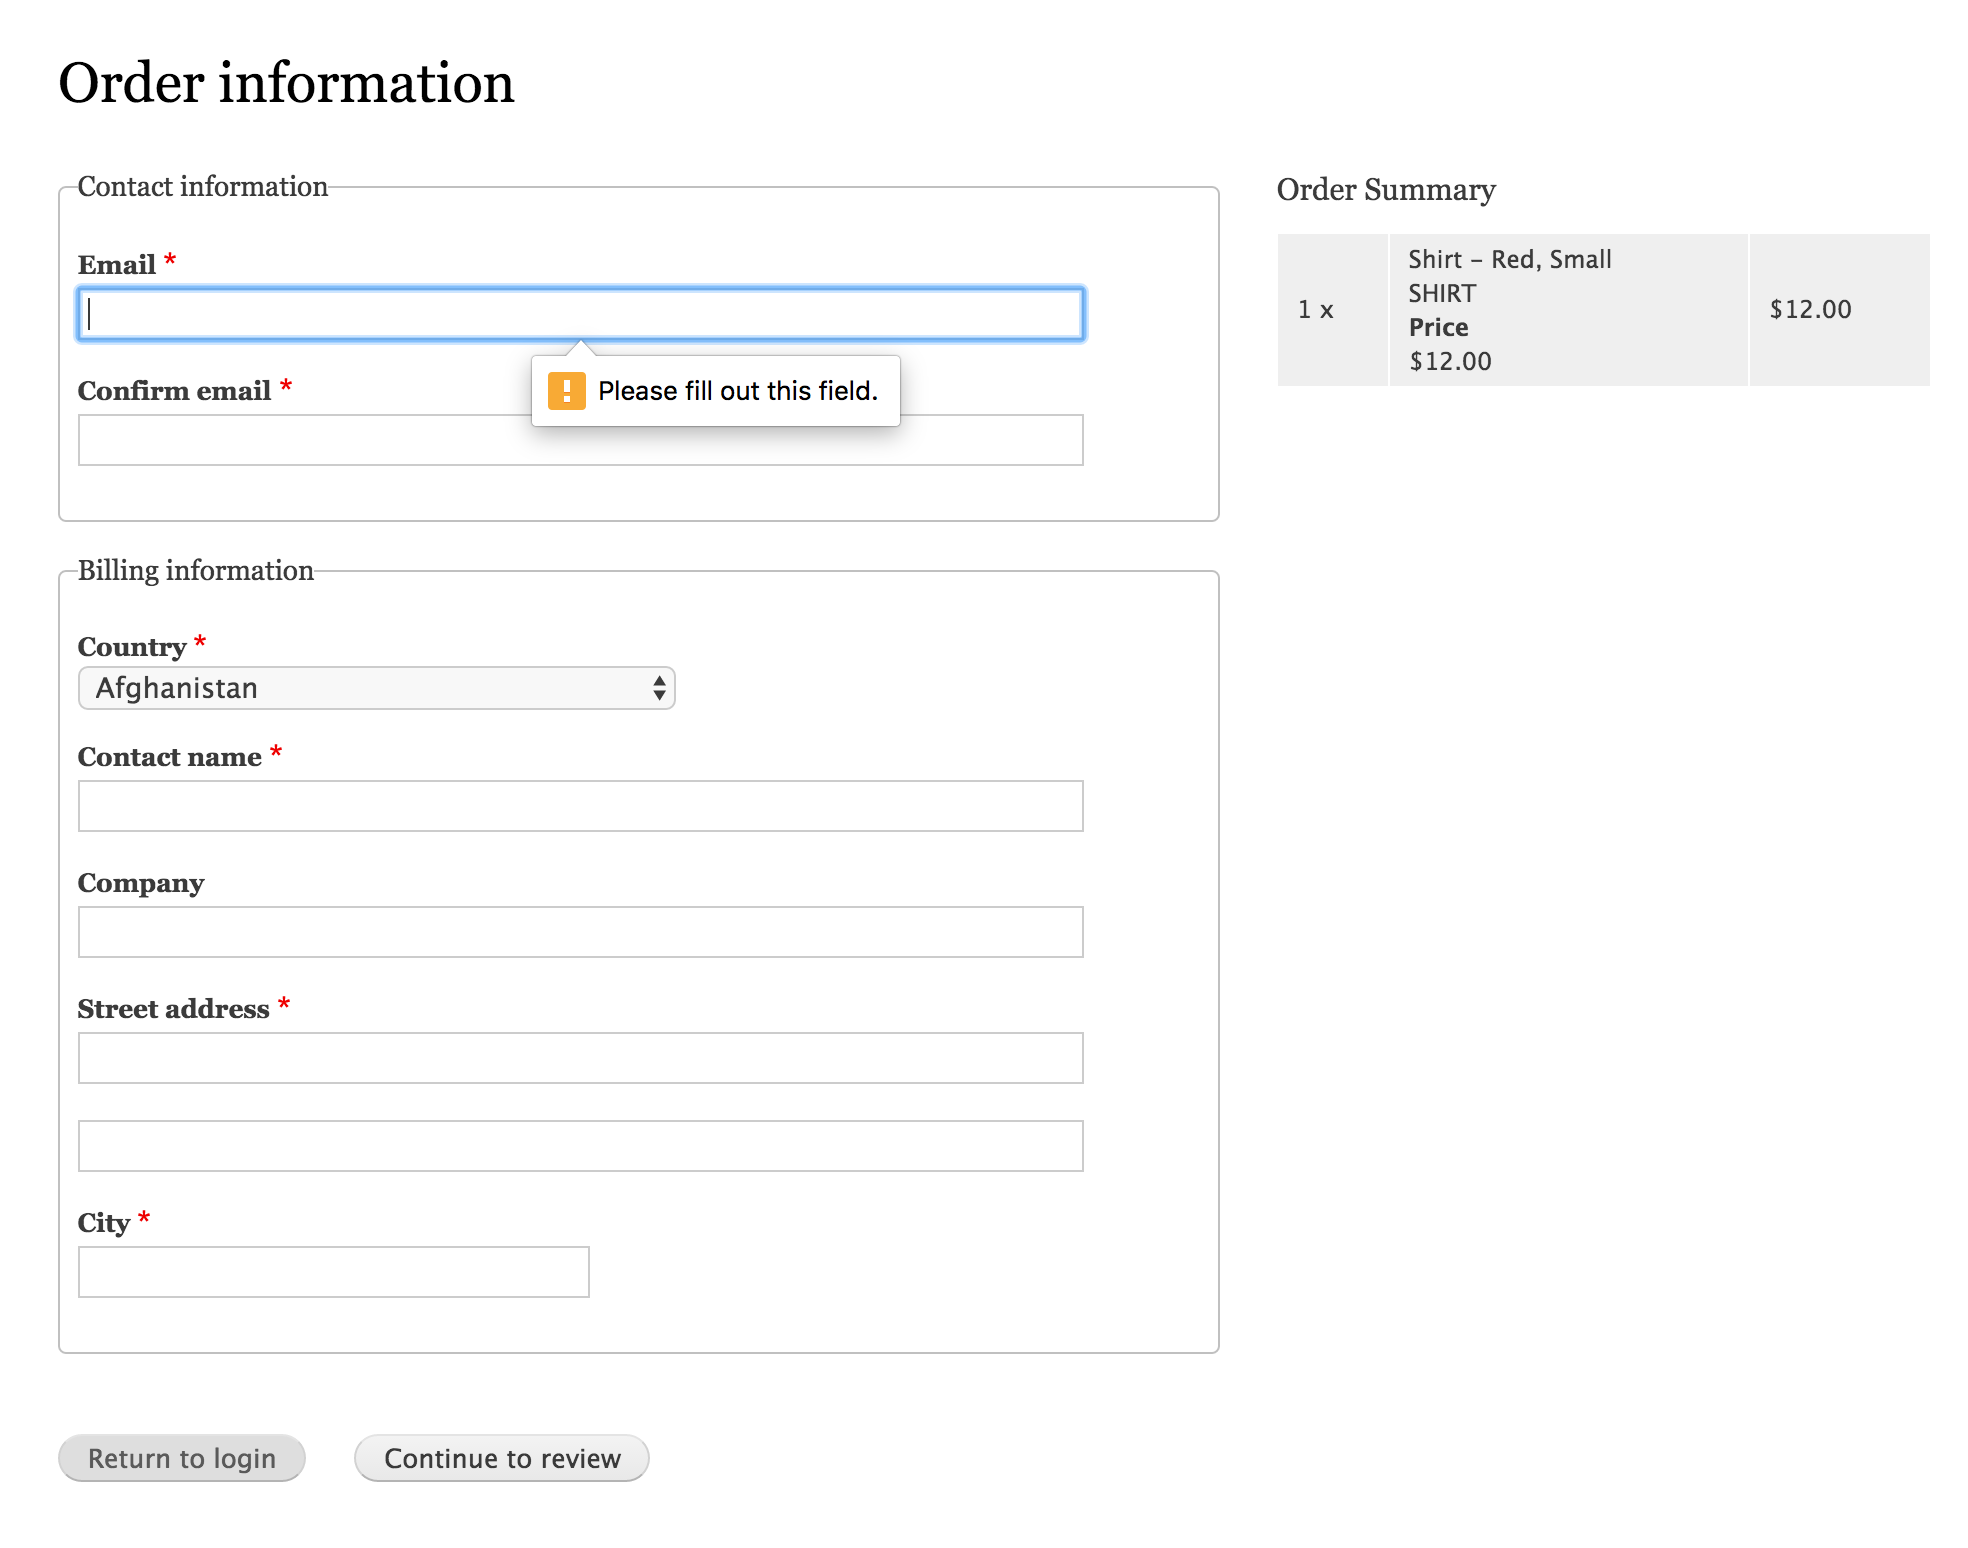 Convert the checkout back button to a link [#2747857